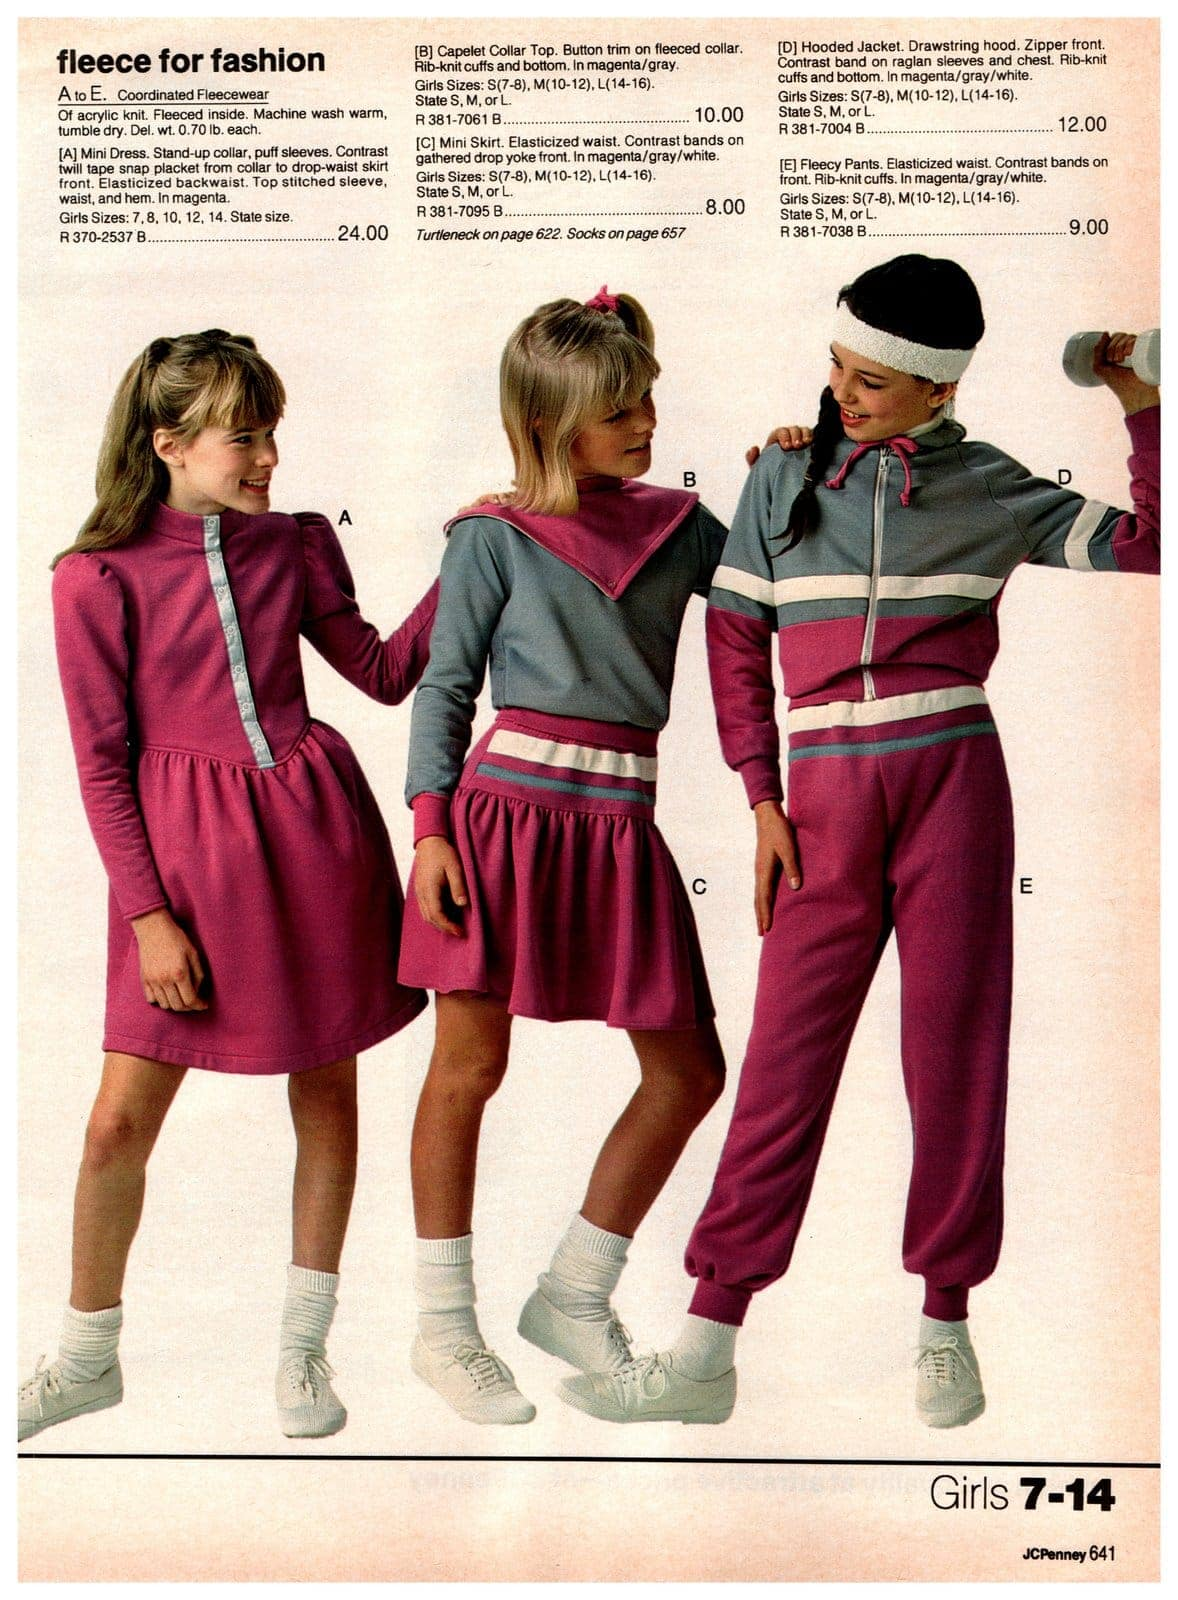 Fleecy sweatshirt material pants, miniskirts, jackets, dresses, and tops for girls ages 7 to 14